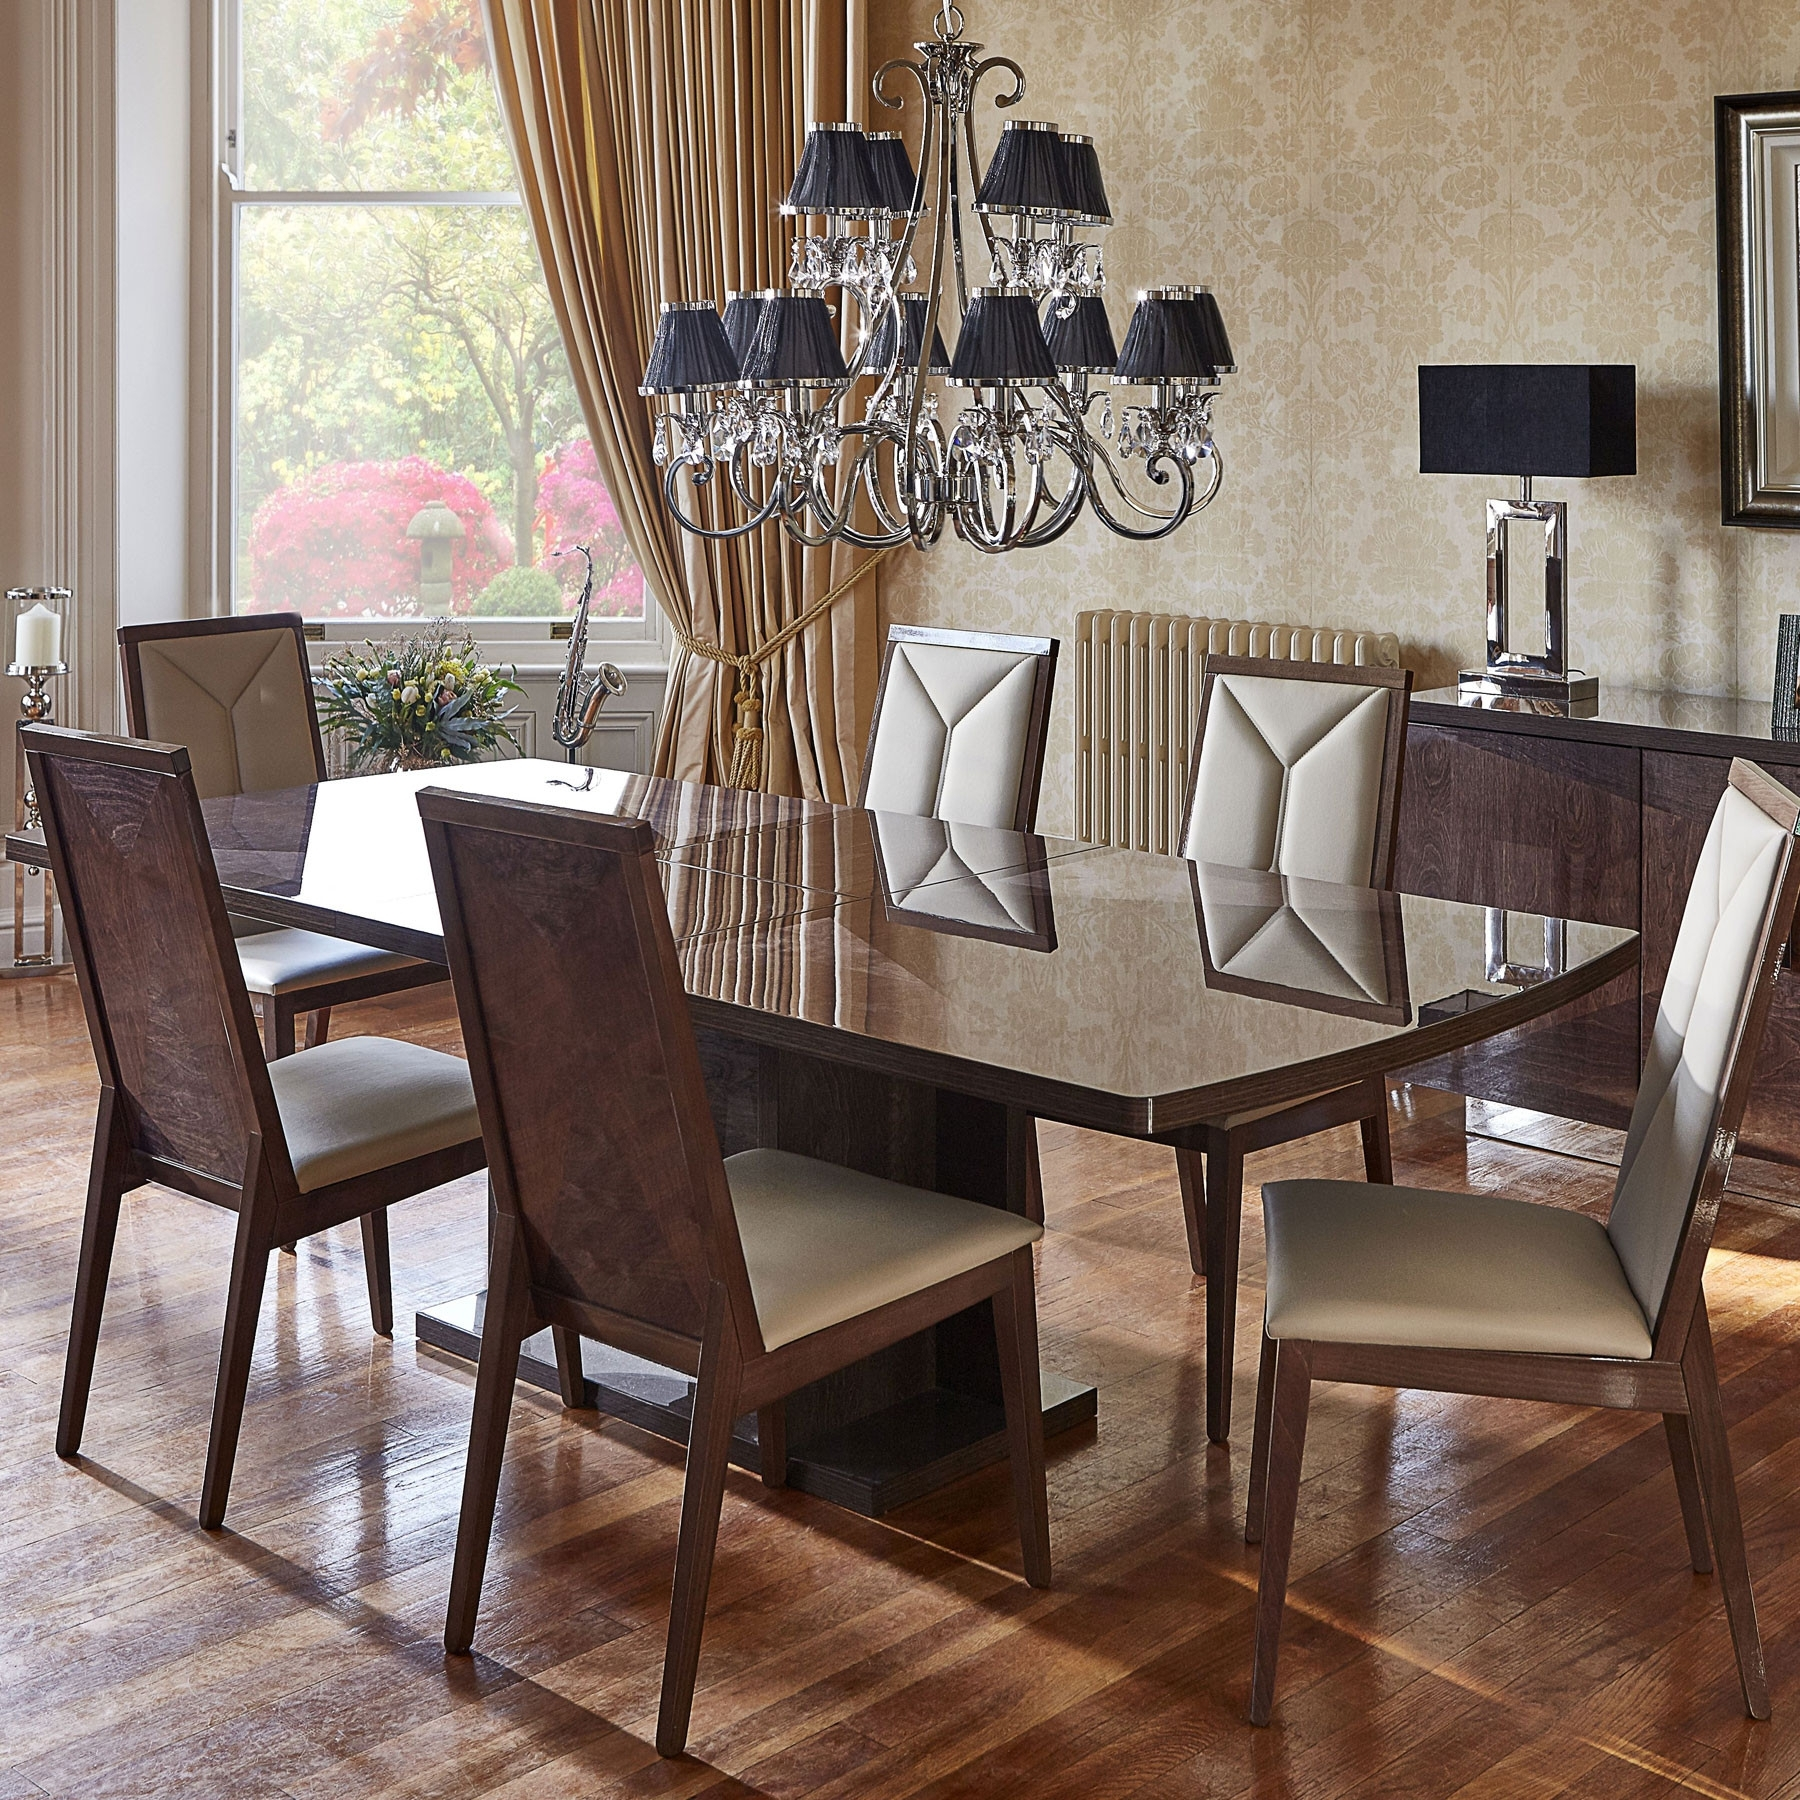 Preferred Extending Dining Tables And 6 Chairs Regarding Vogue High Gloss Extending Dining Table & 6 Chairs (View 9 of 25)